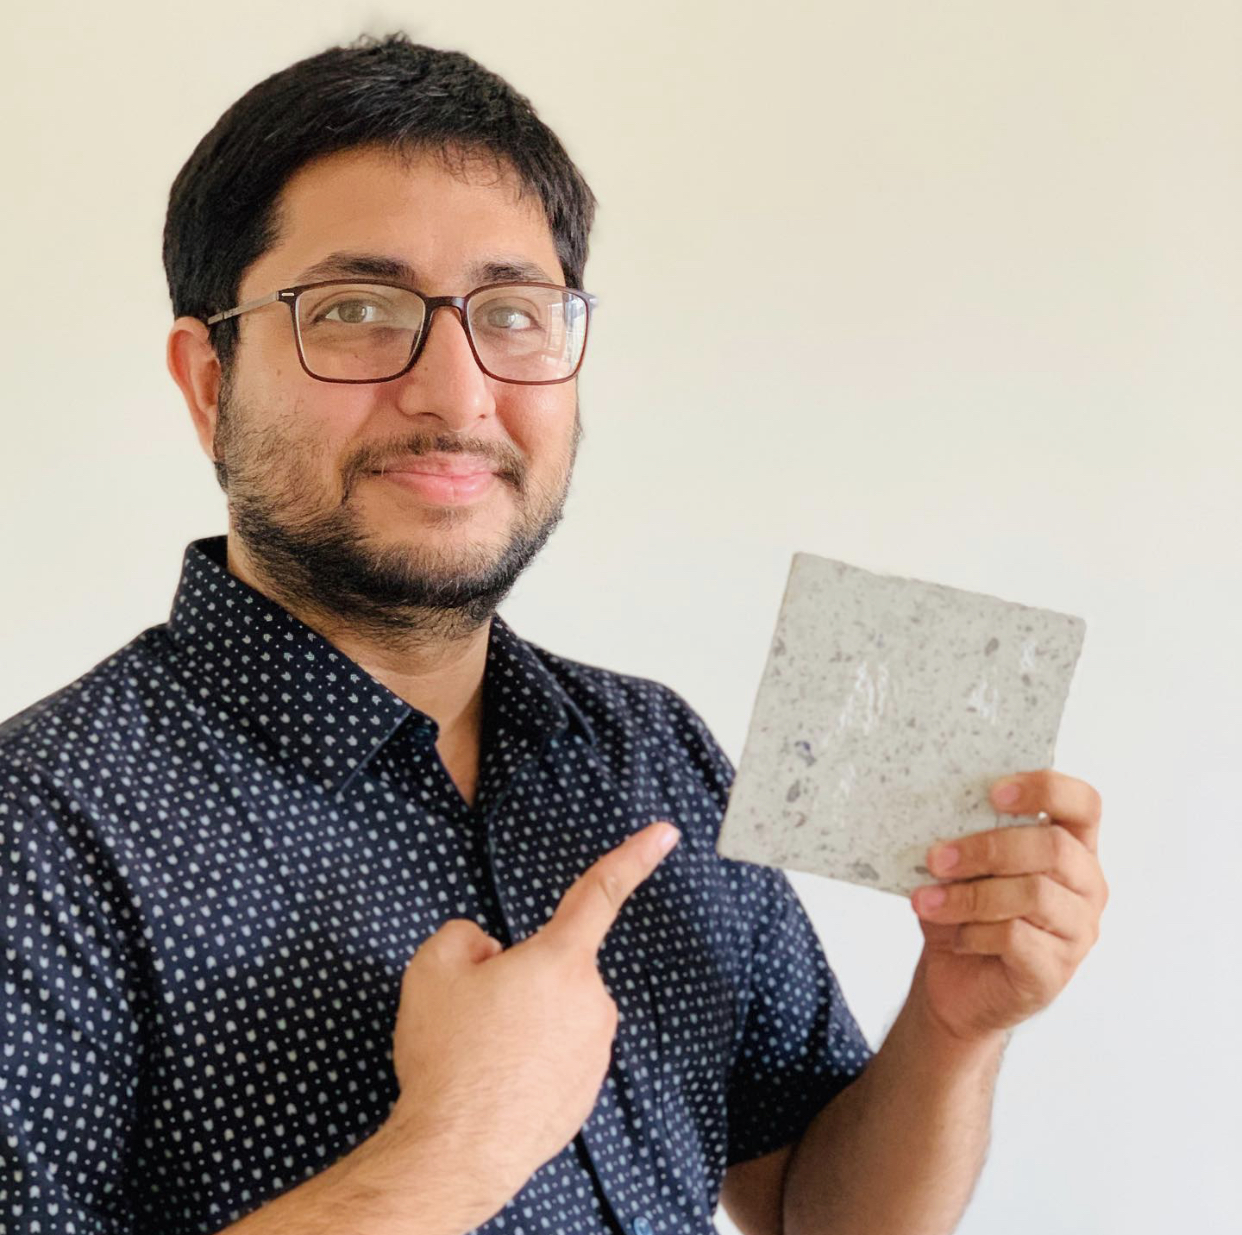 Binish Desai from Gujarat has found a way to recycle PPE kits into bricks for homes